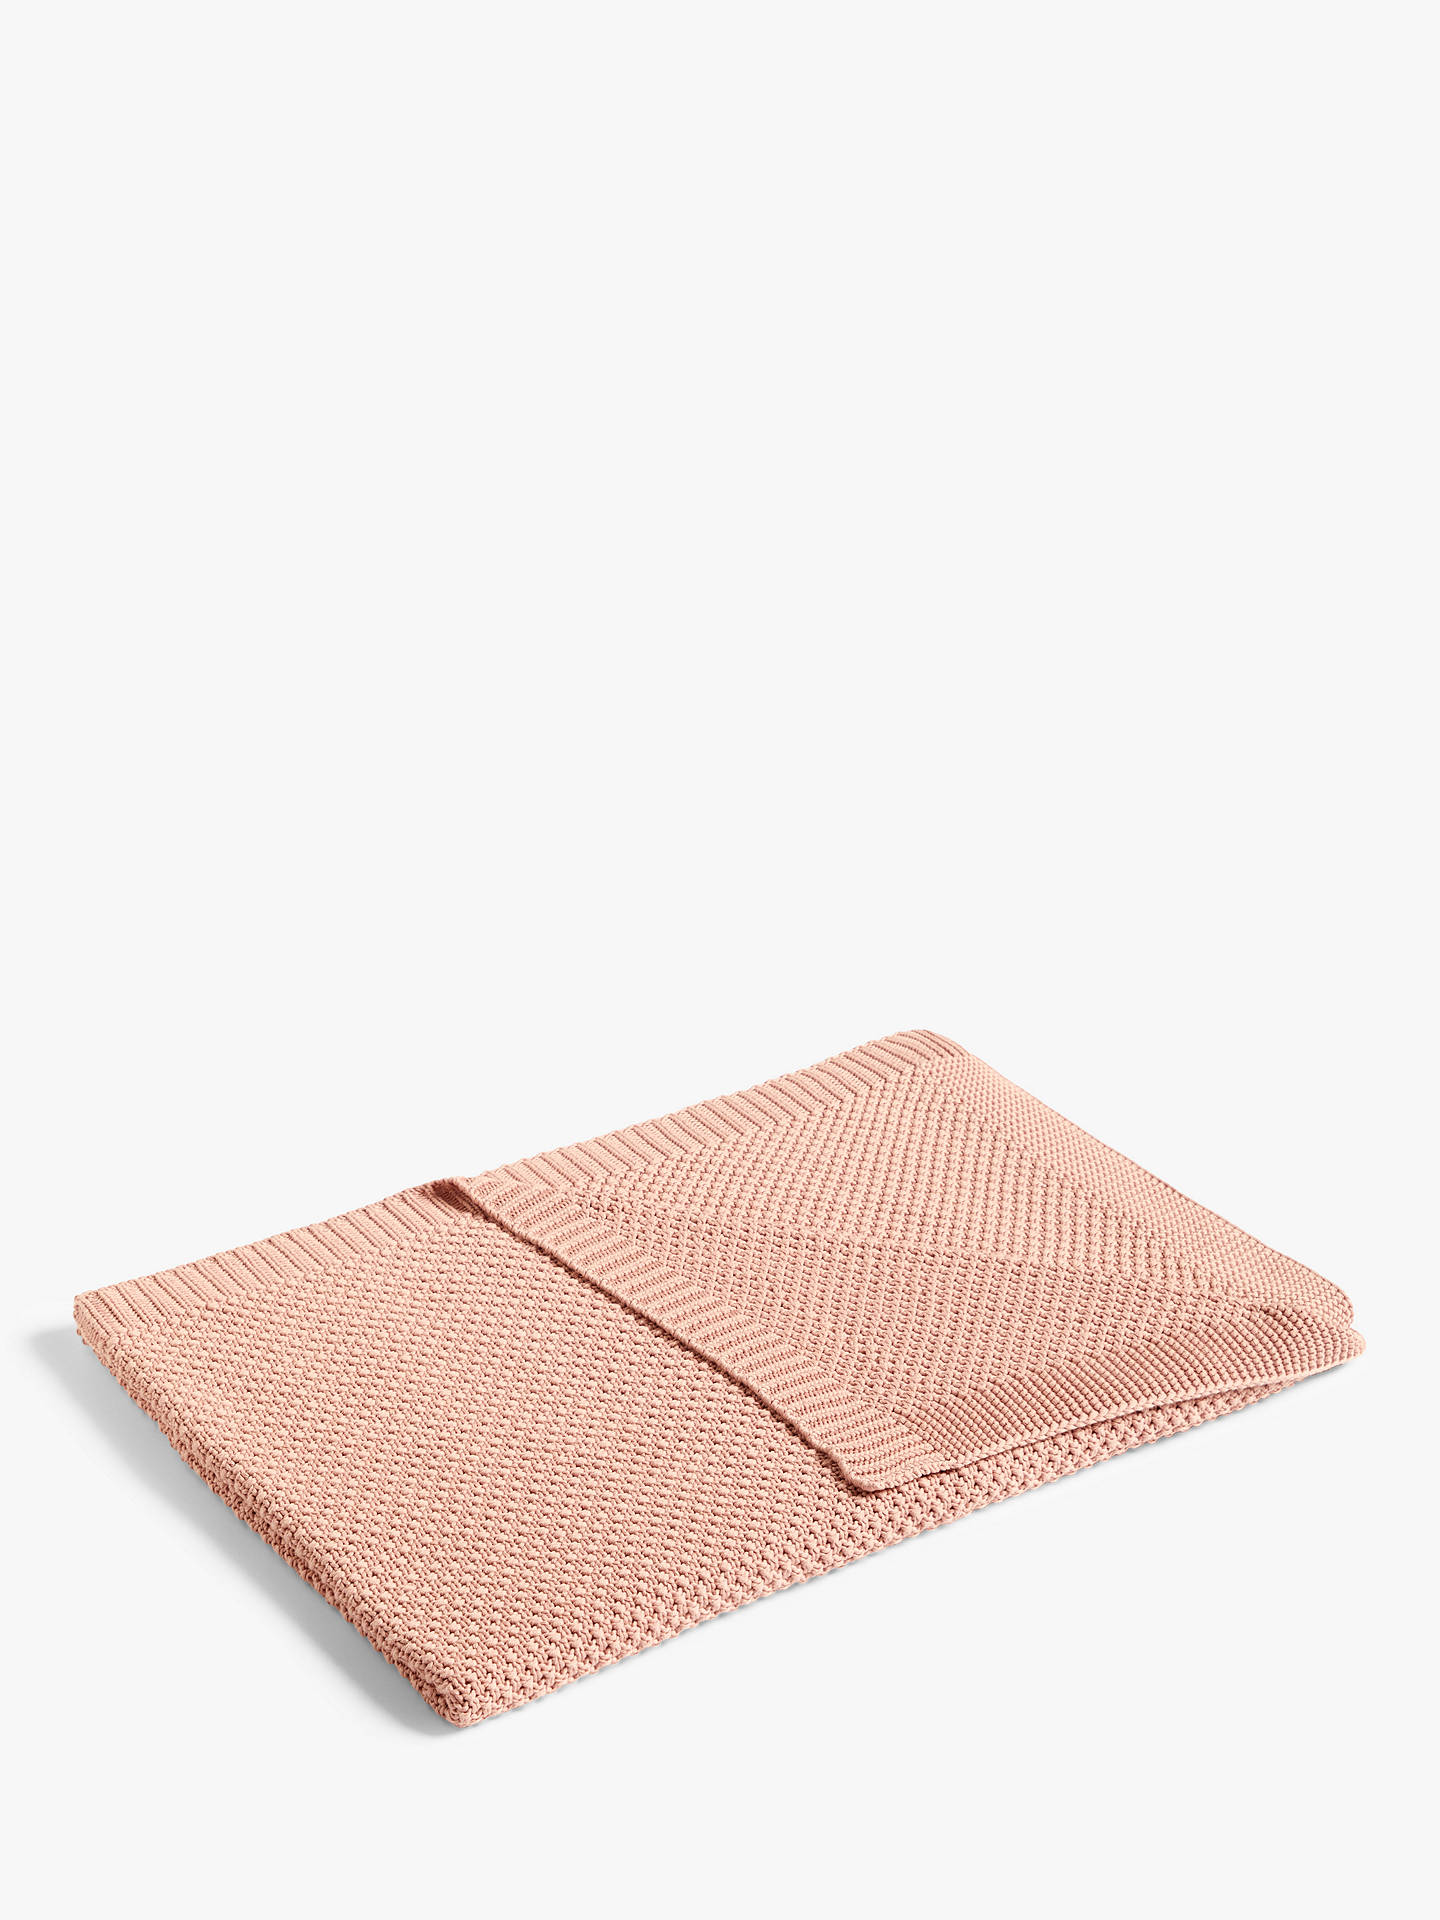 Buy John Lewis & Partners Textured Knit Throw, Woodrose Online at johnlewis.com